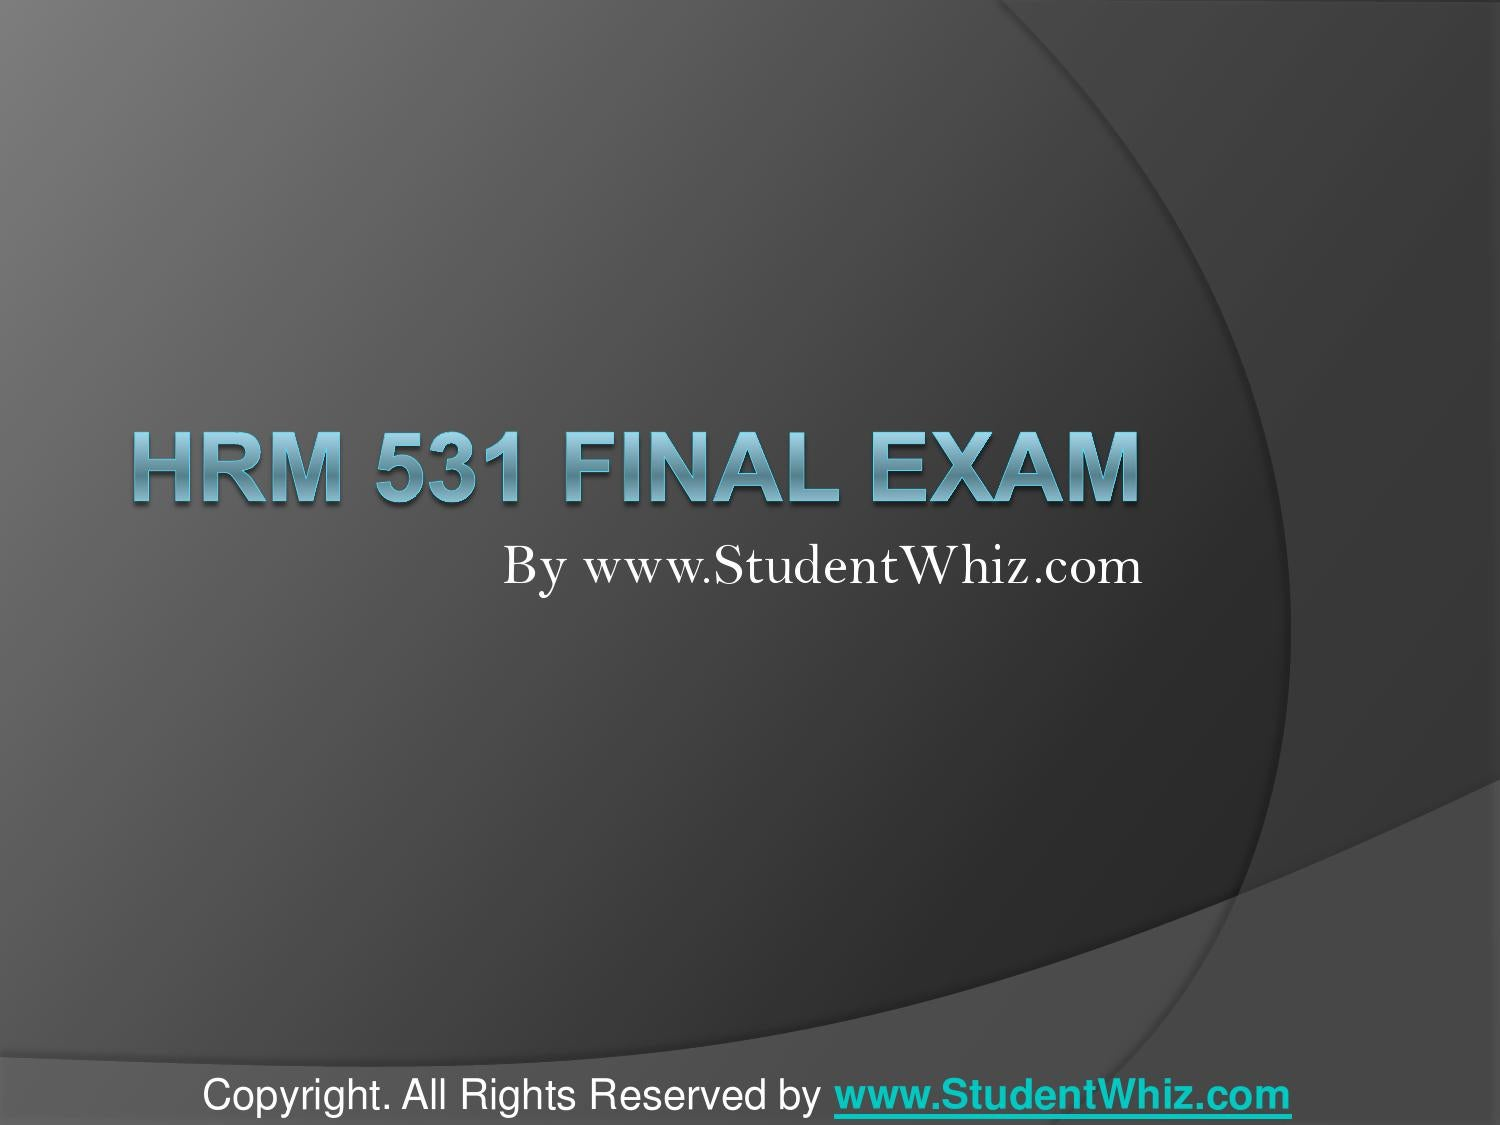 hrm 531 final exam Explore emma danial's board hrm 531 final exam on pinterest | see more ideas about final exams, finals and homework.